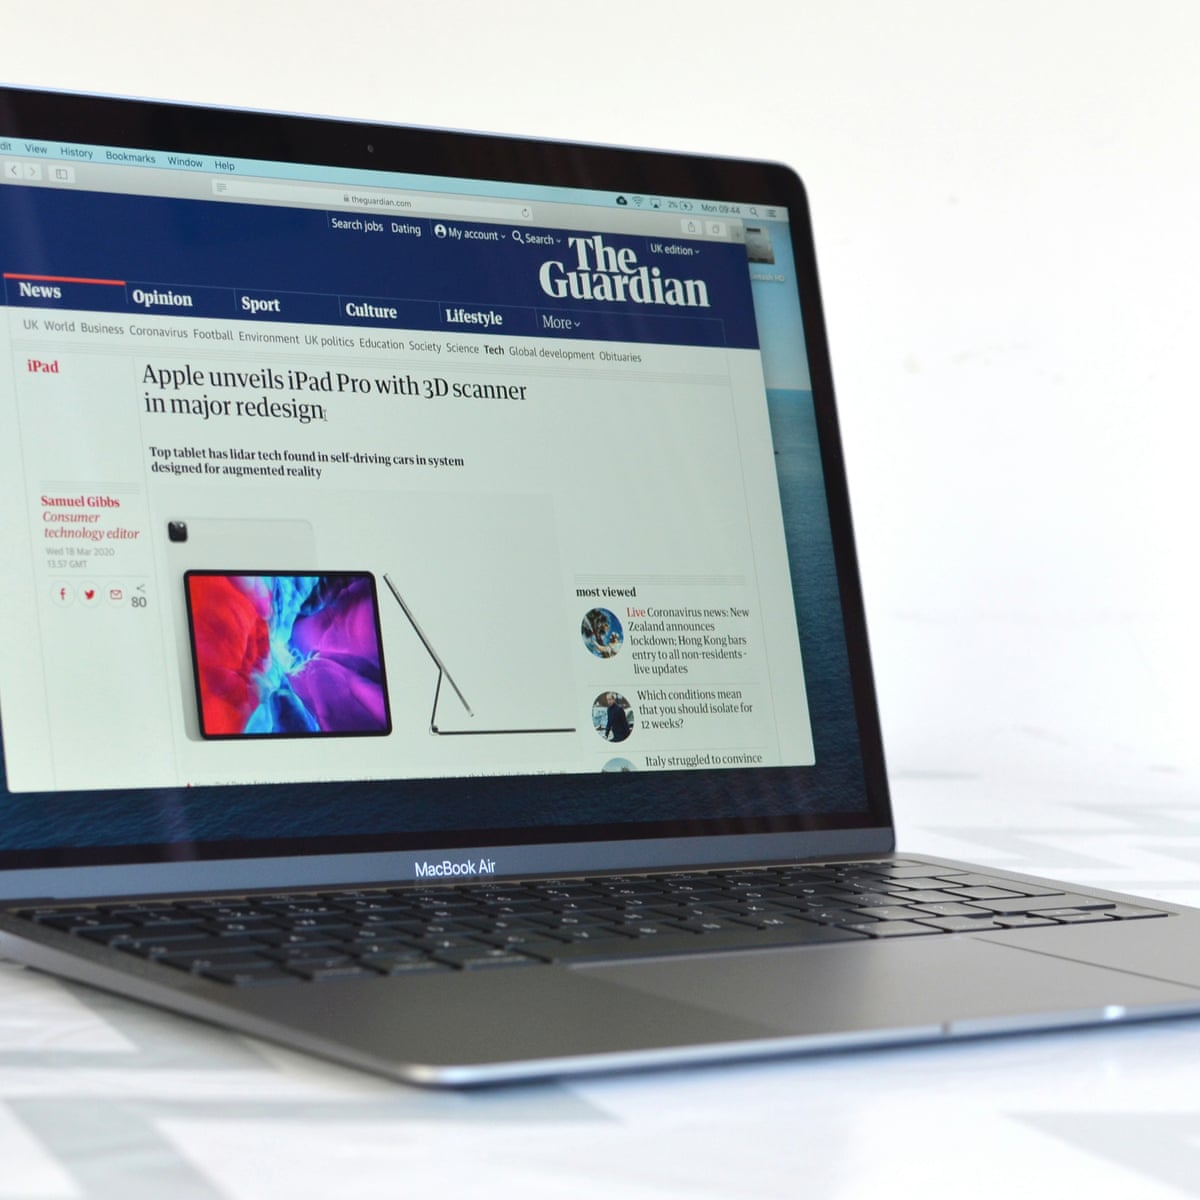 Apple Macbook Air Review 2020 S Near Perfect Consumer Laptop Technology The Guardian